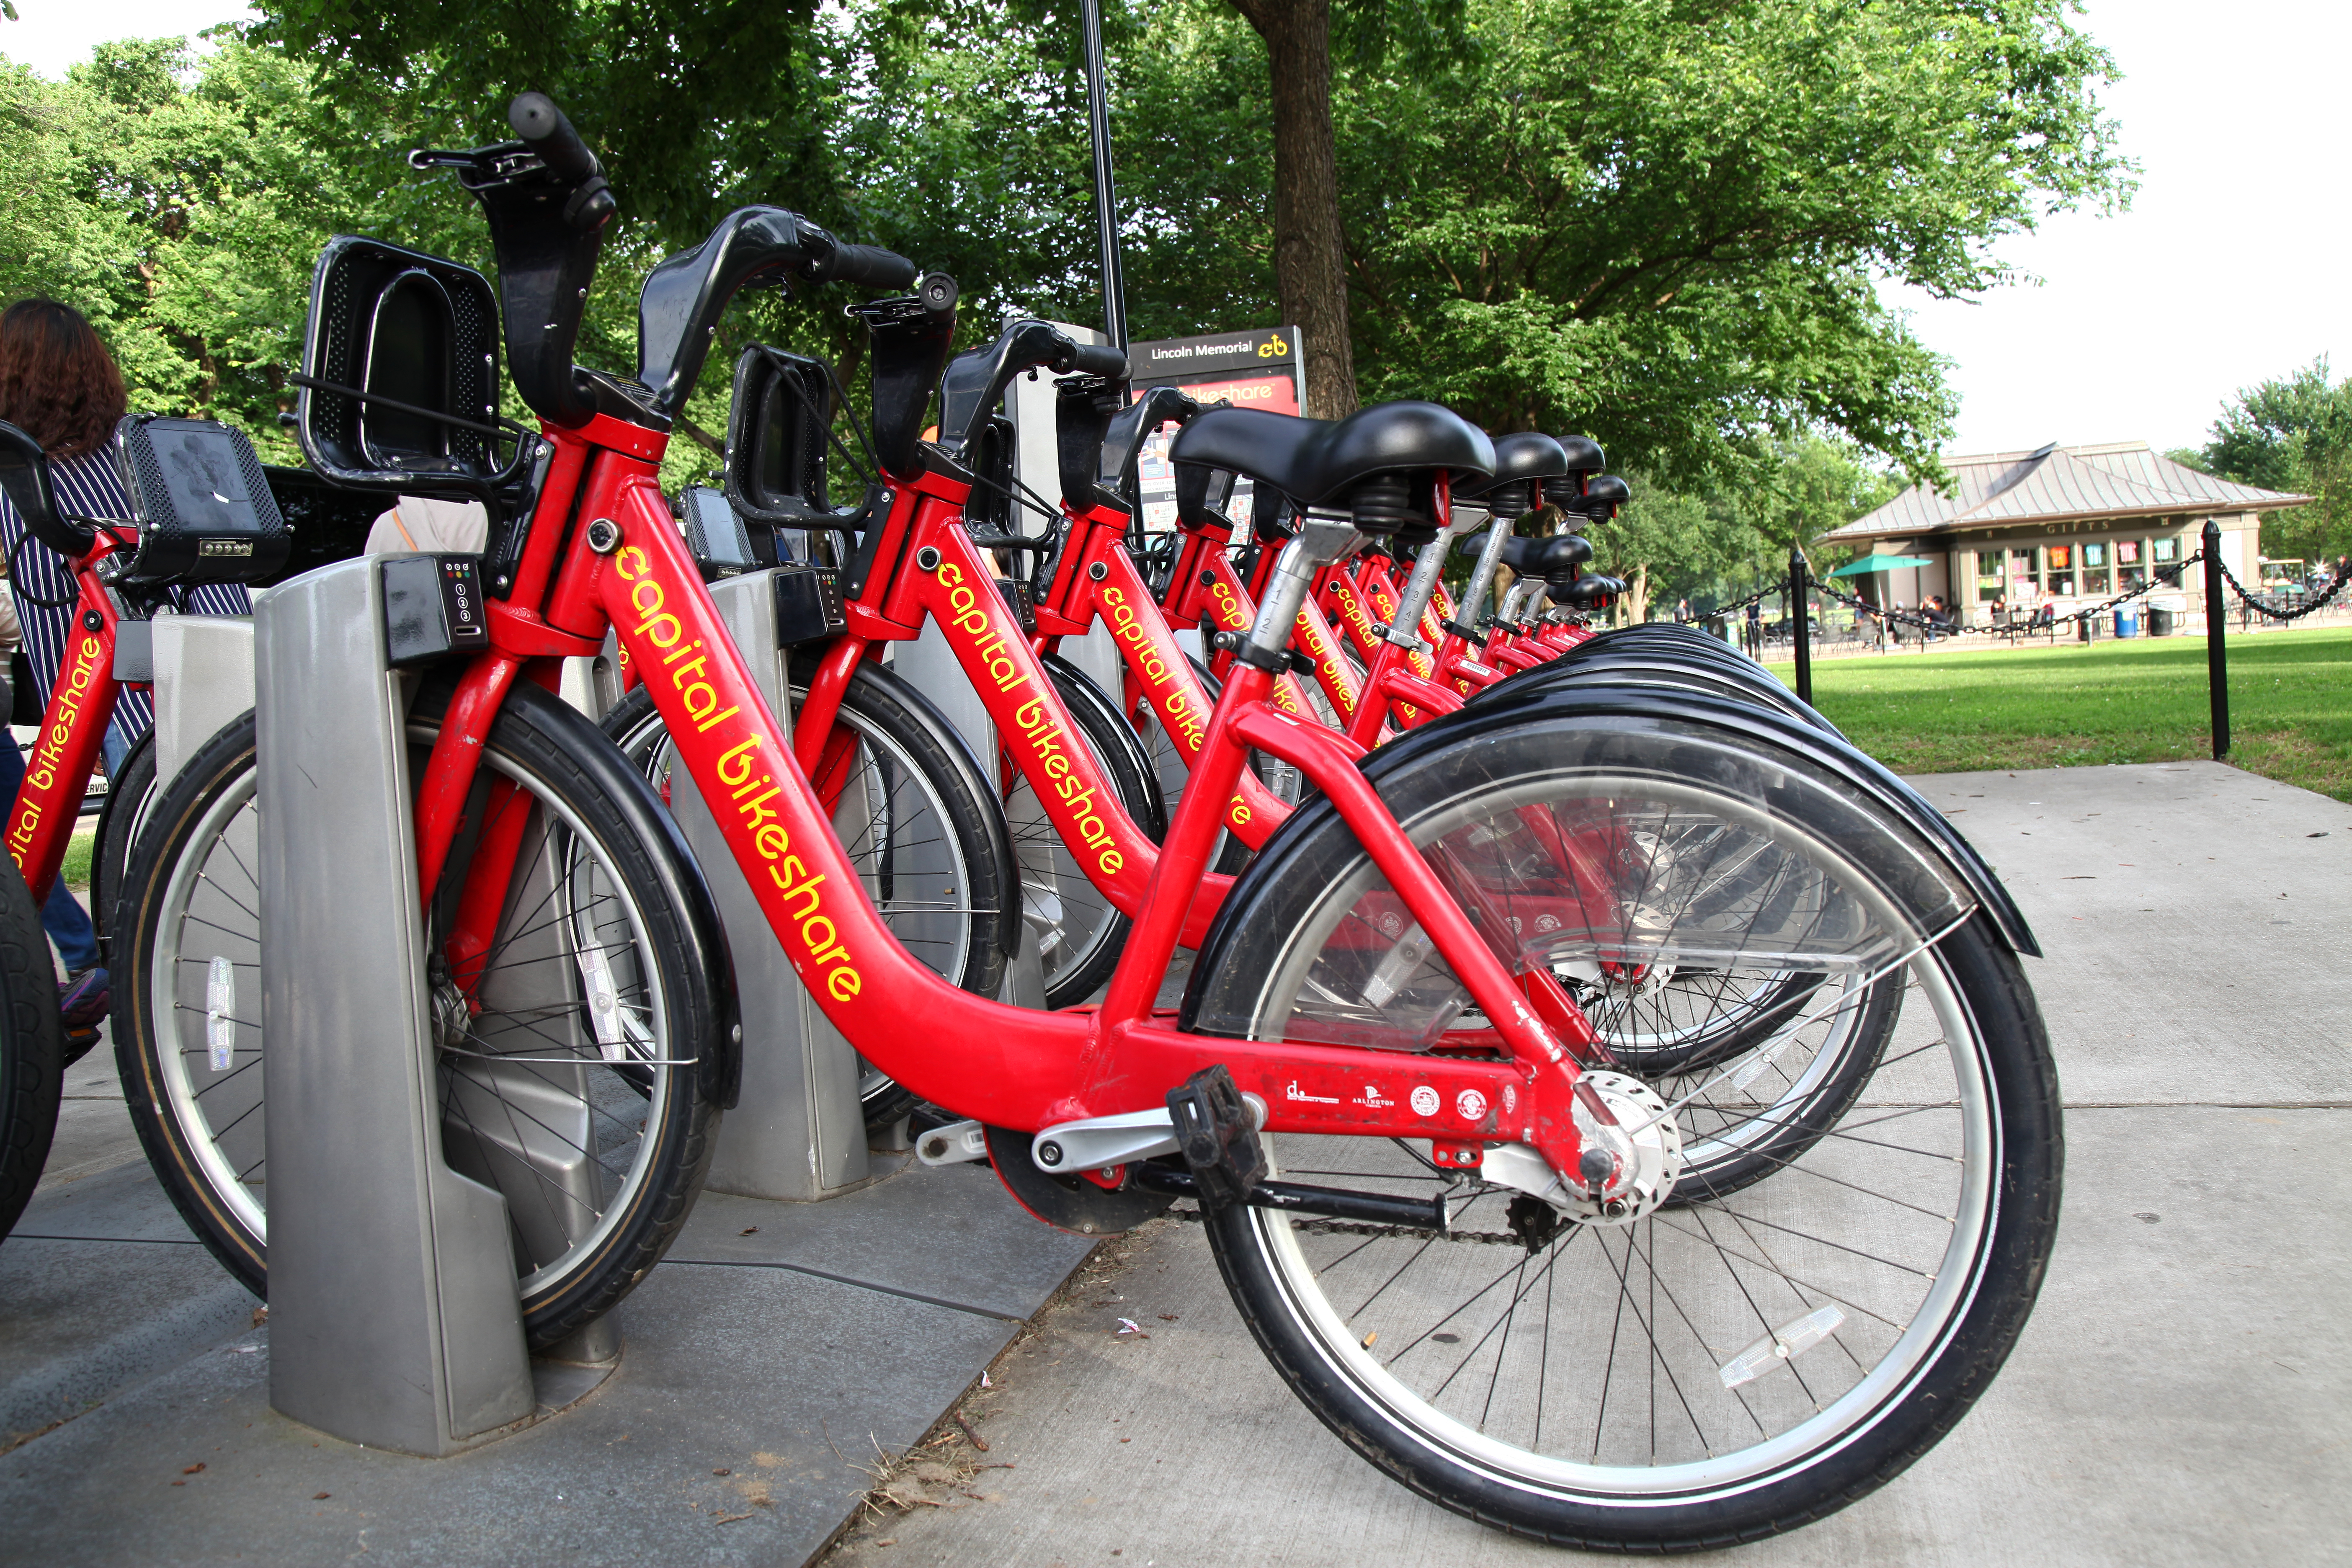 Capital Bikeshare temporarily takes its electric bikes out of service after reports of brake issues